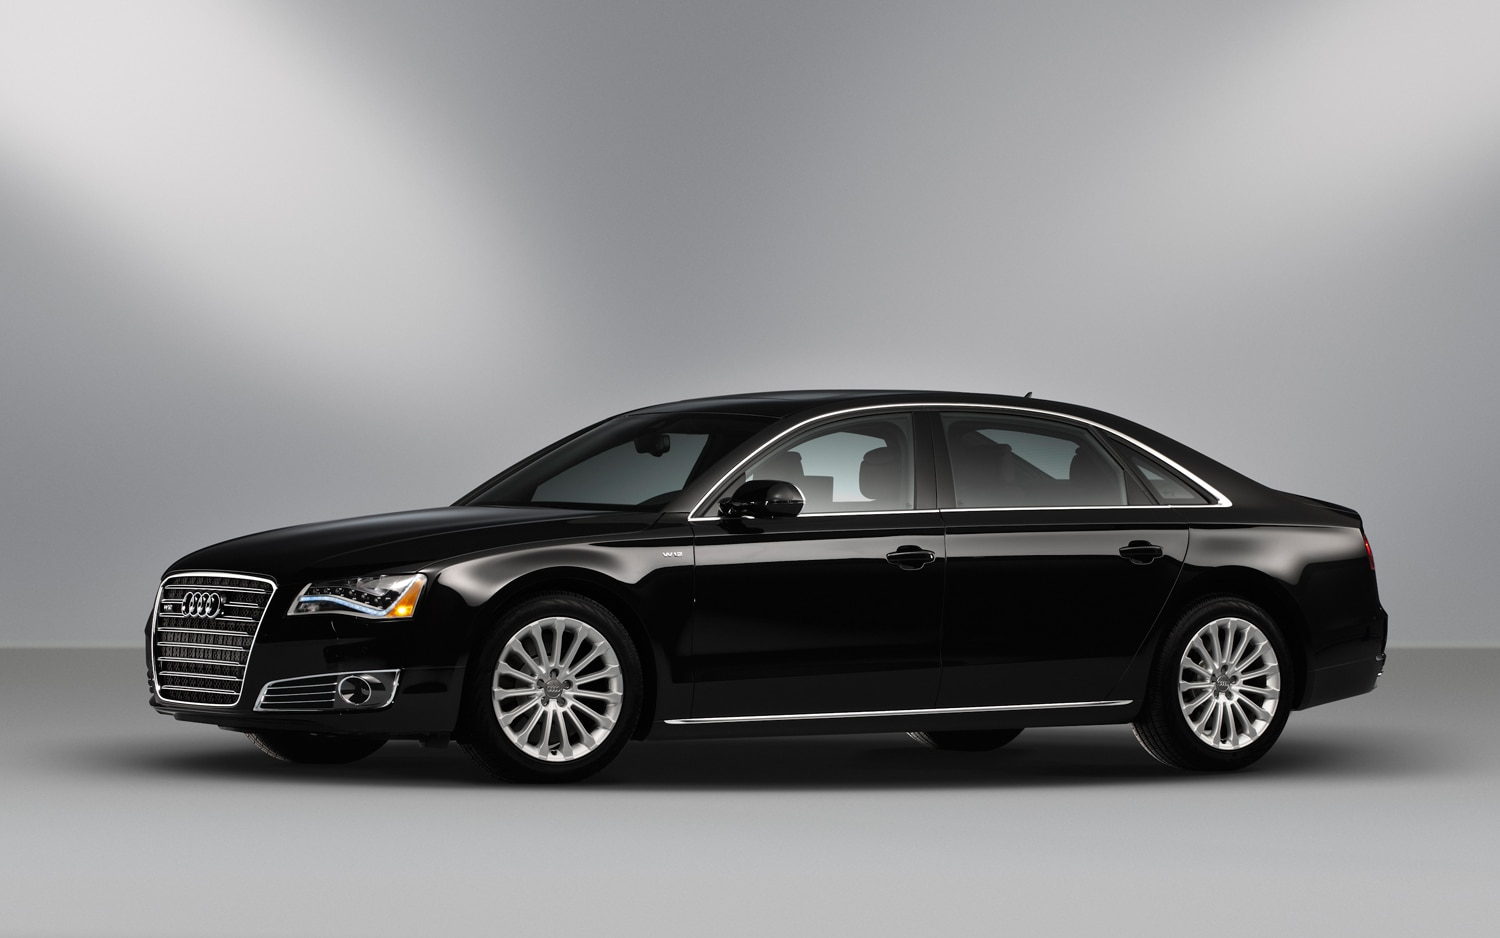 Audi Prices 2013 A8 30T at 73095 A8 L W12 at 135395 Photo